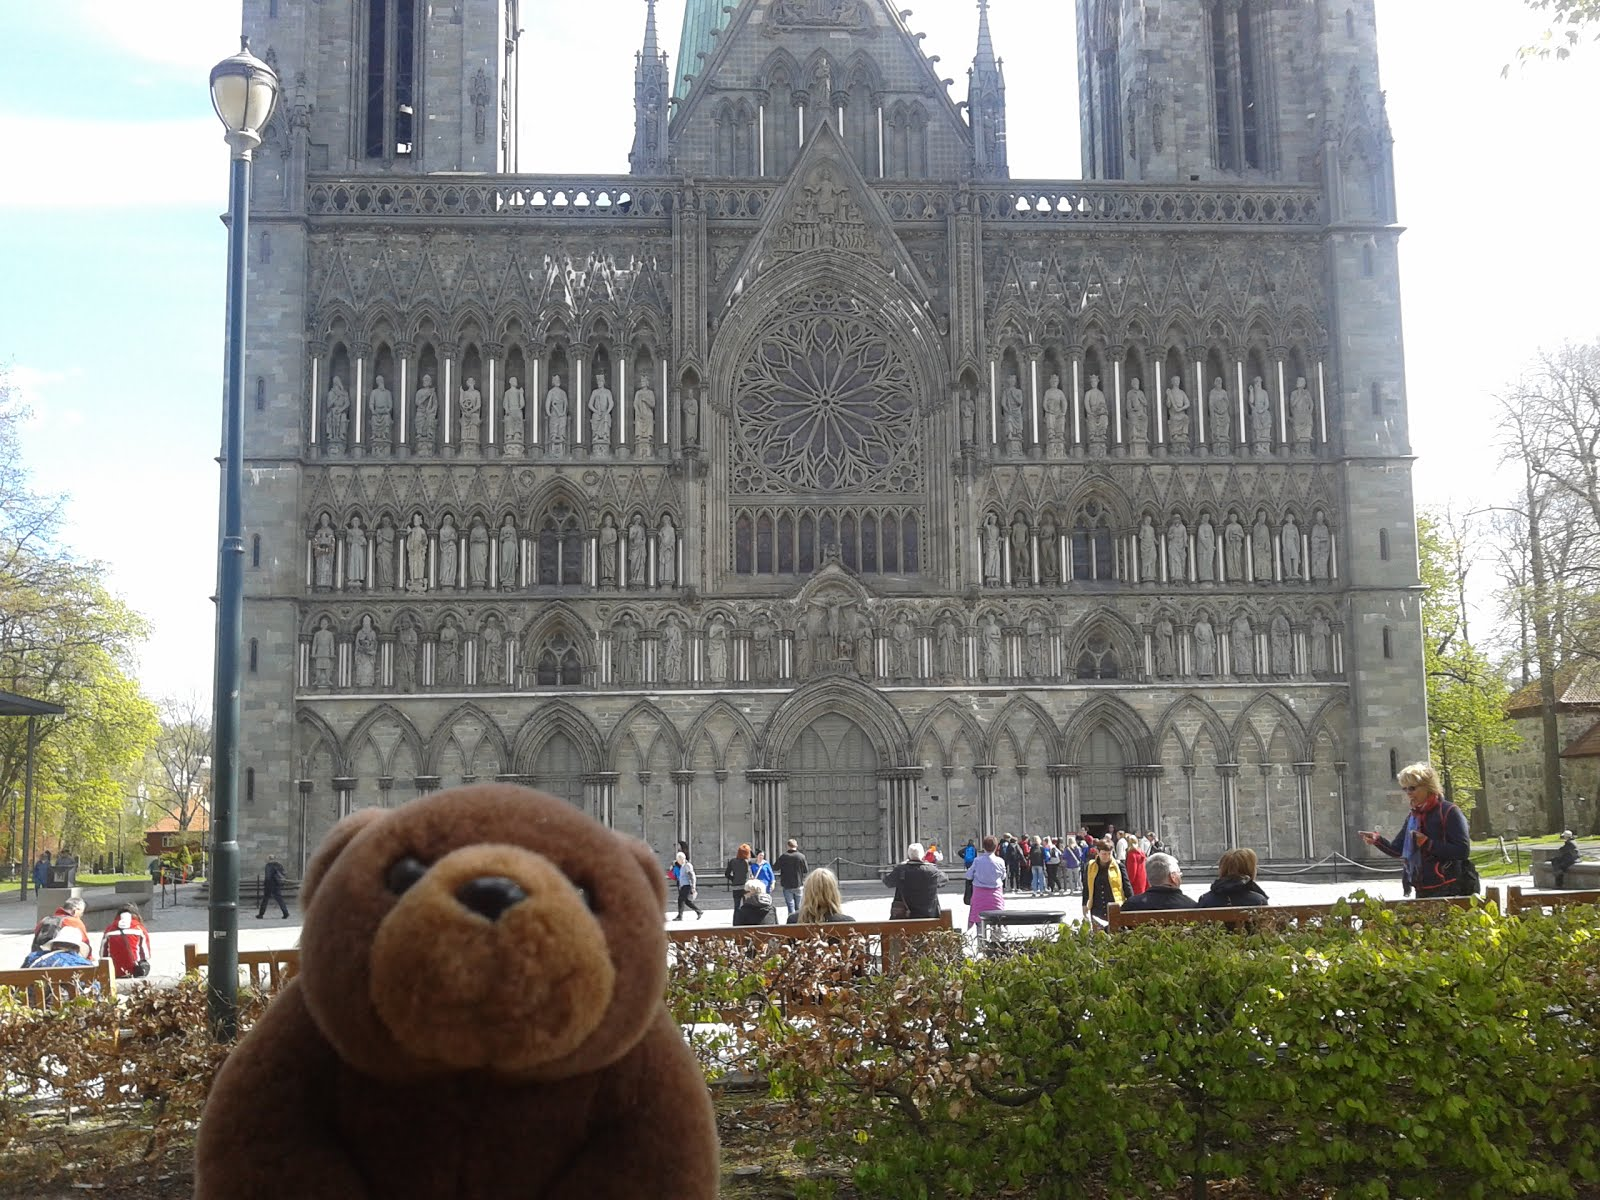 Teddy Bear in Trondheim, Norway